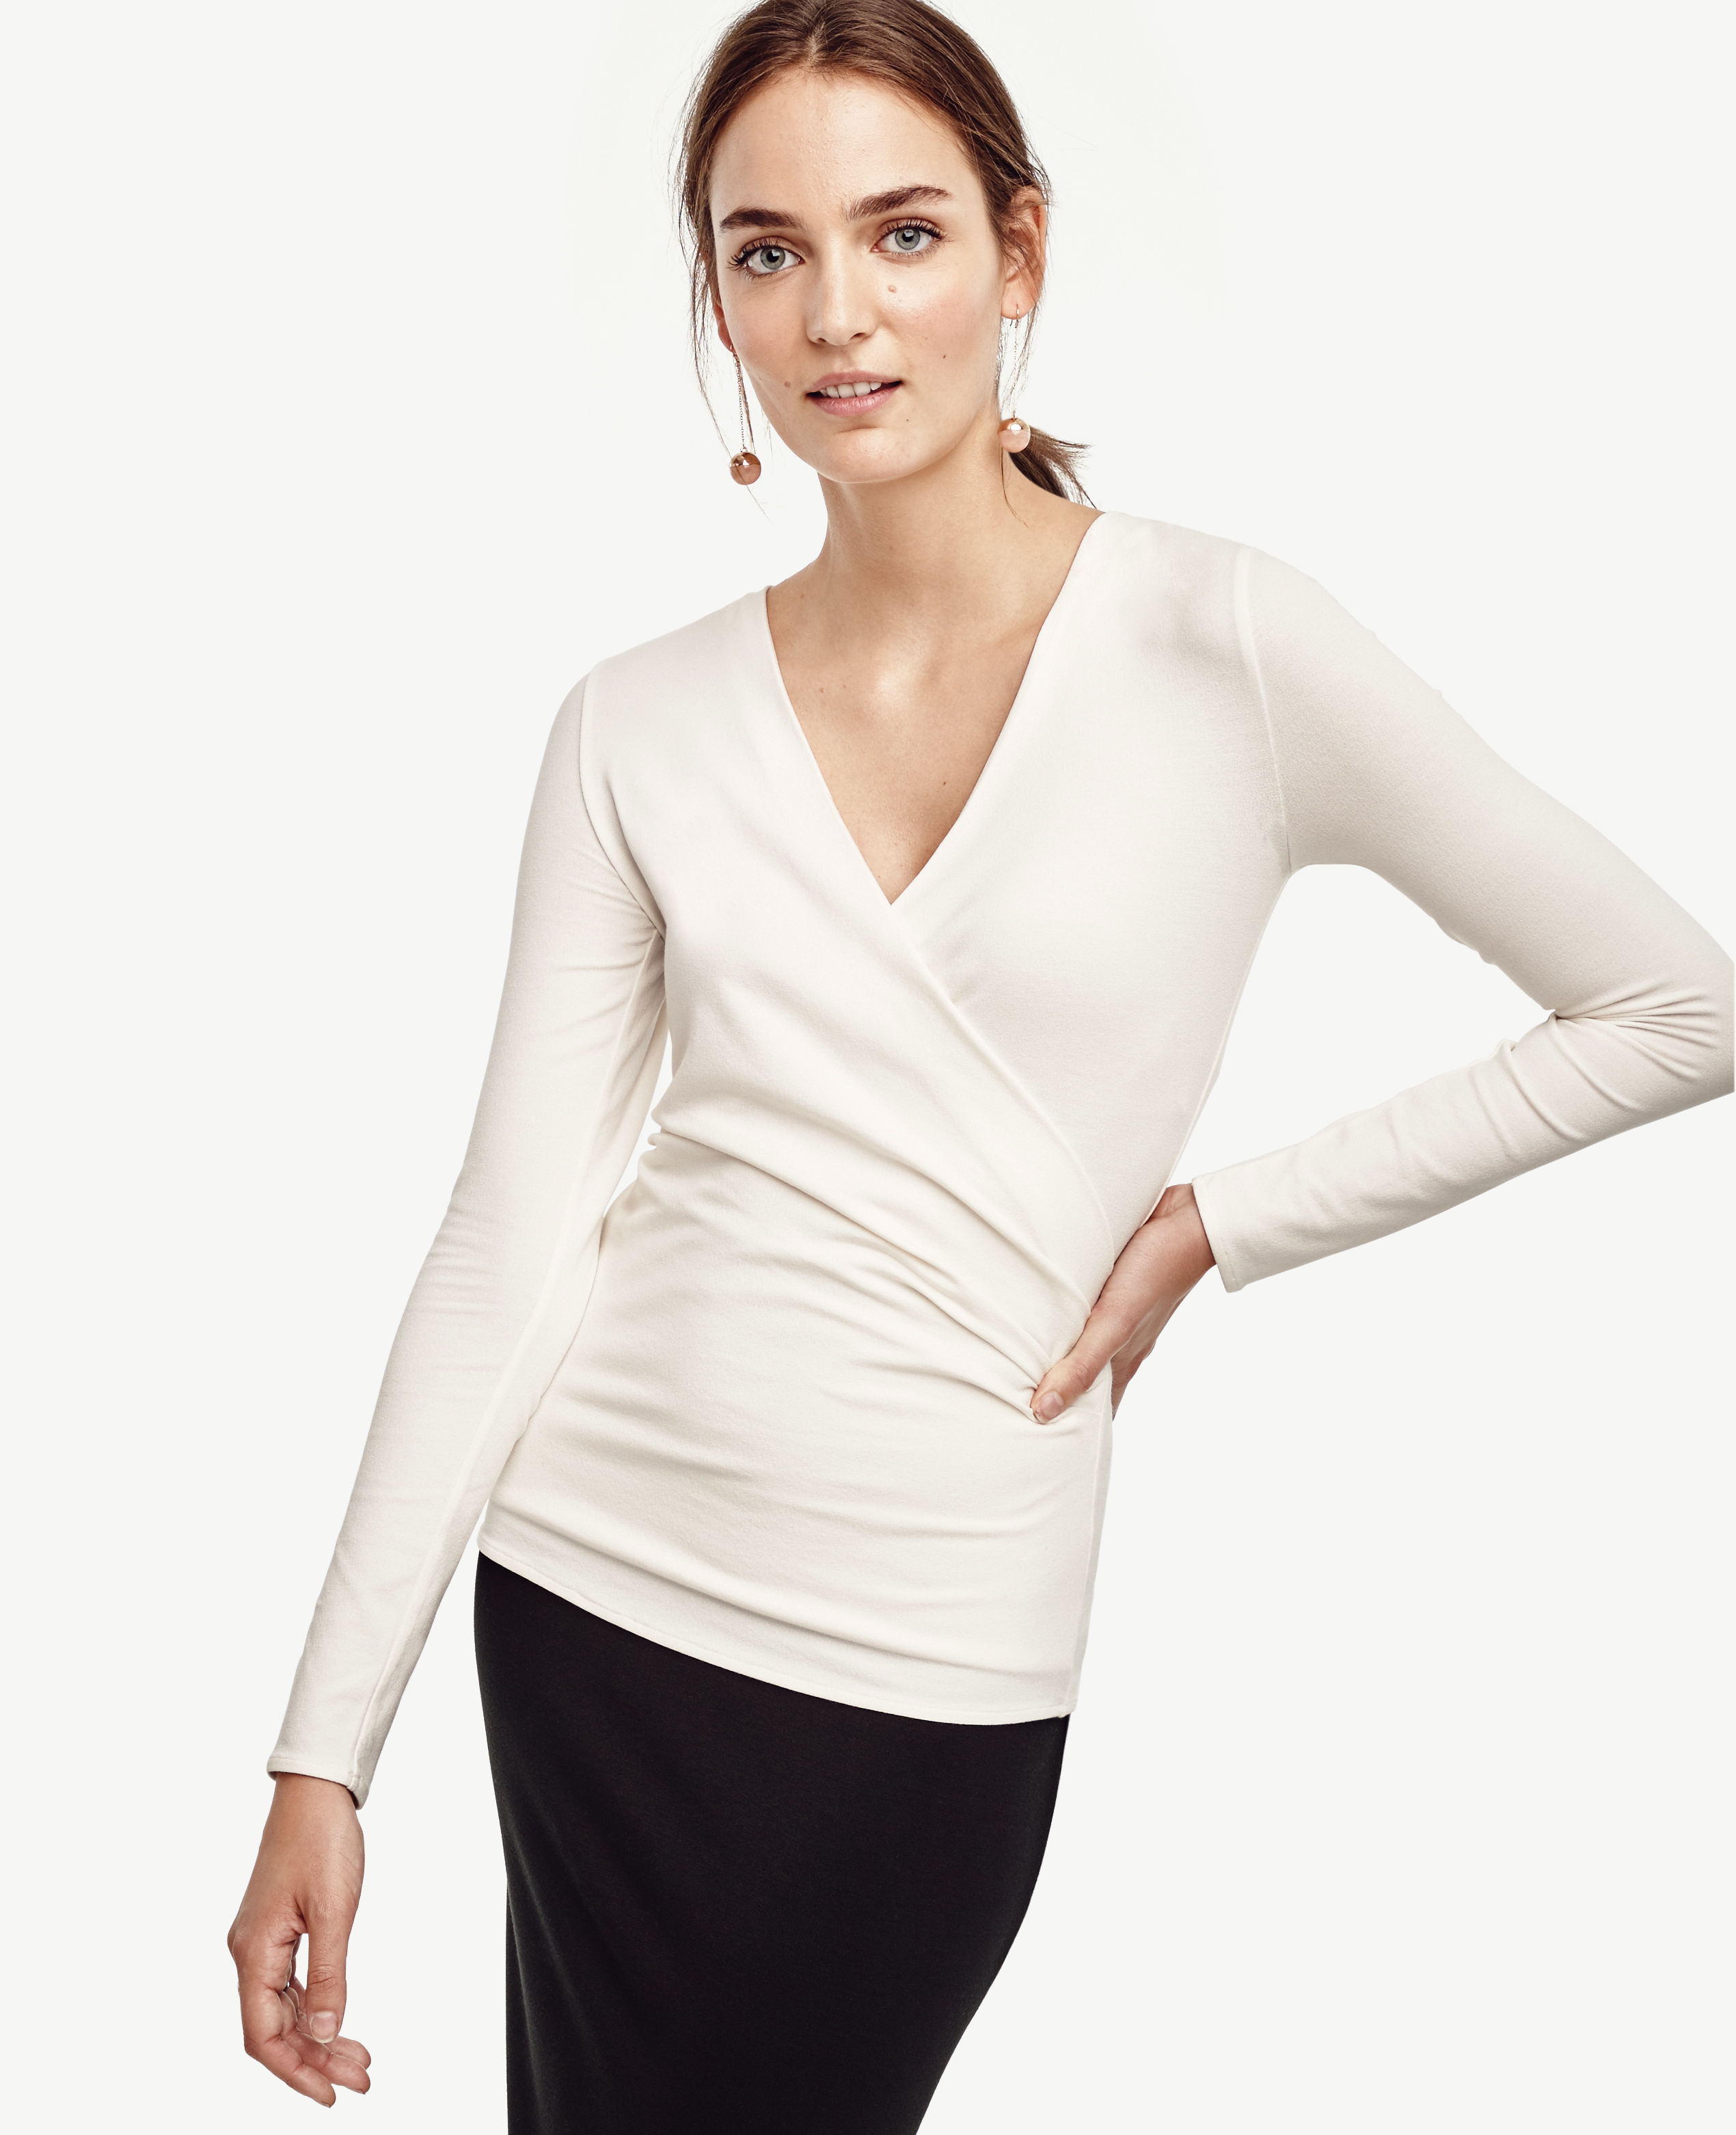 Ann taylor Petite Side Ruched Wrap Top in White